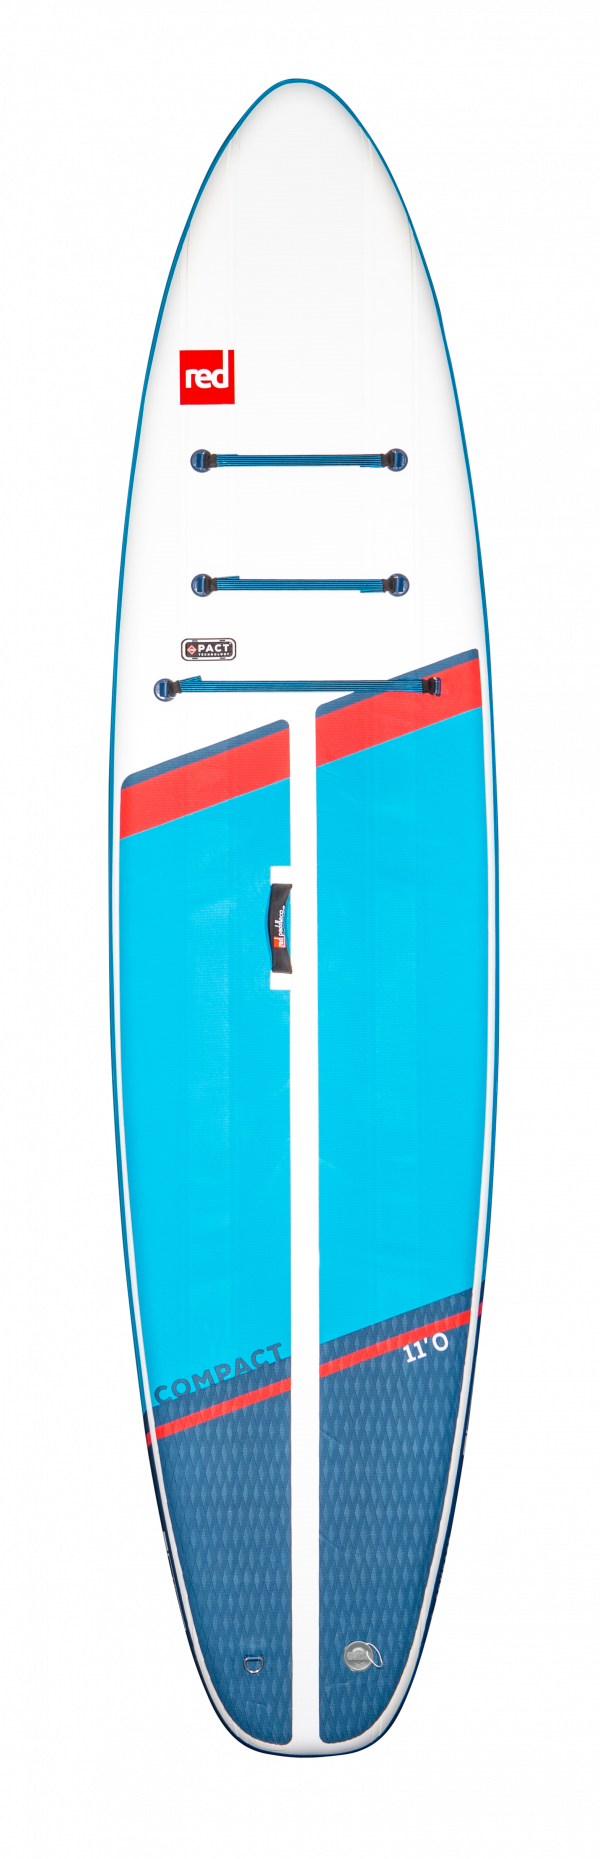 Compact 9'6 Package